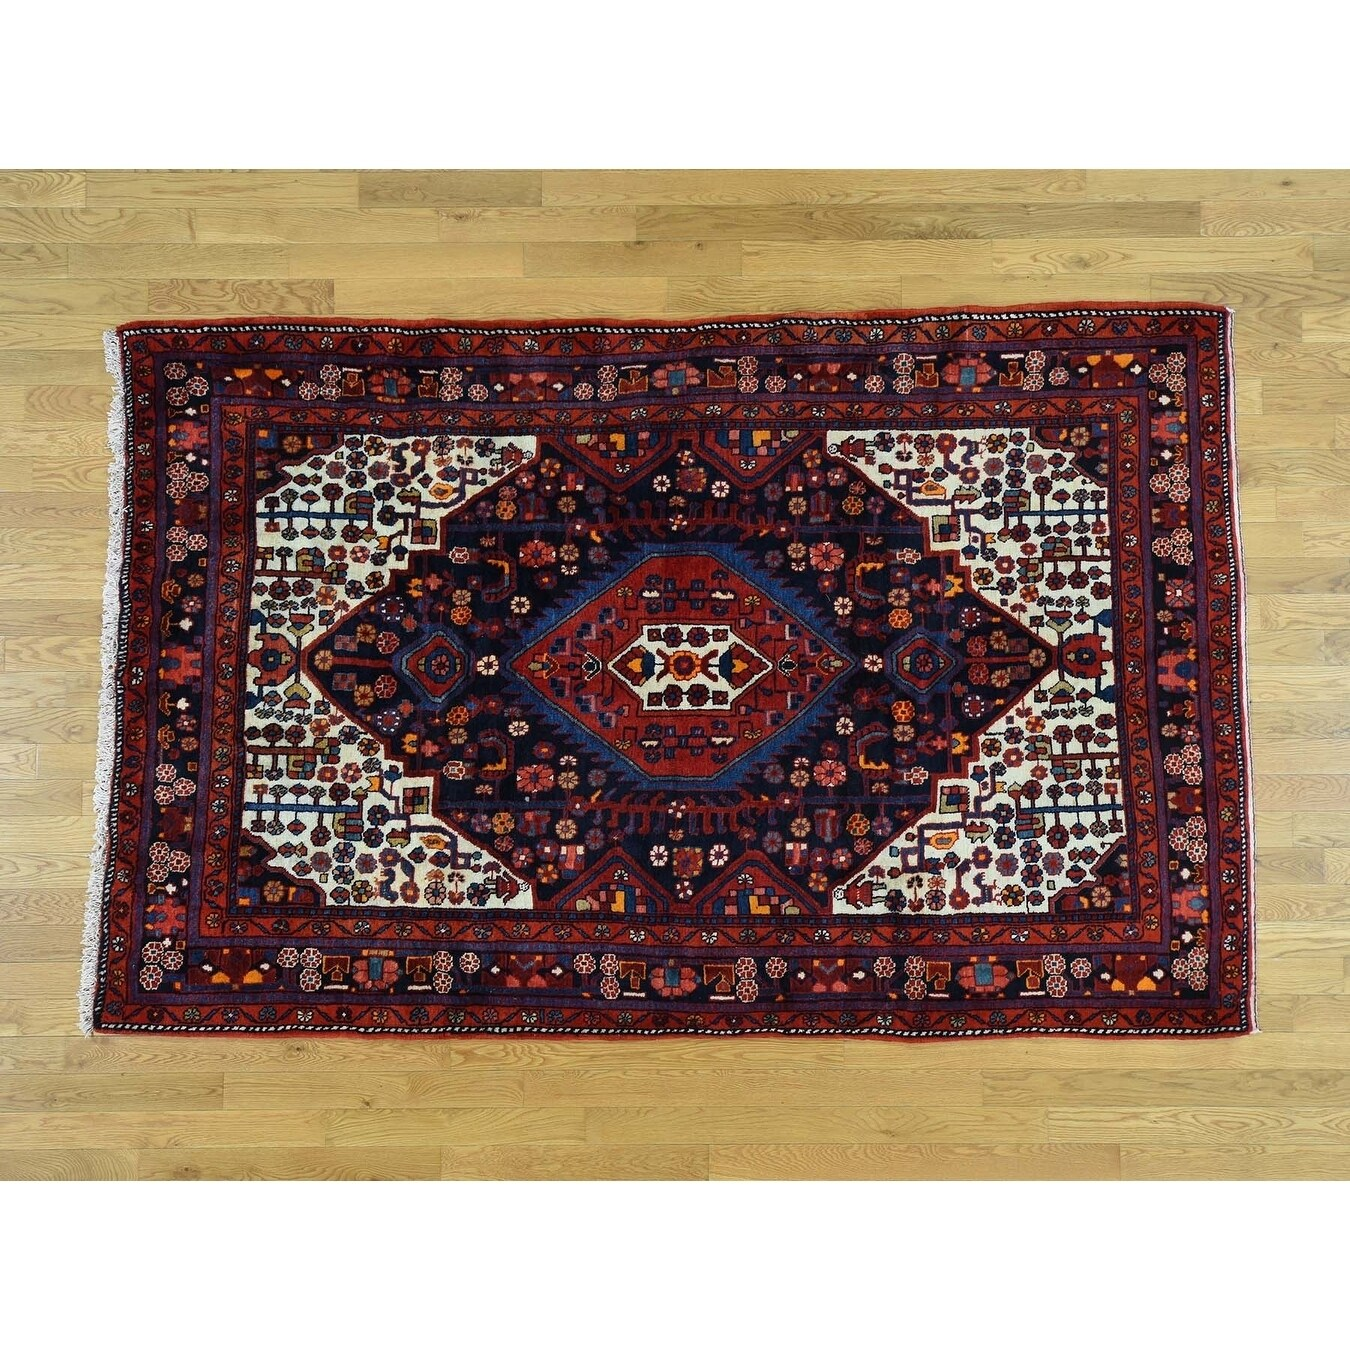 Hand Knotted Black Persian with Wool Oriental Rug - 56 x 85